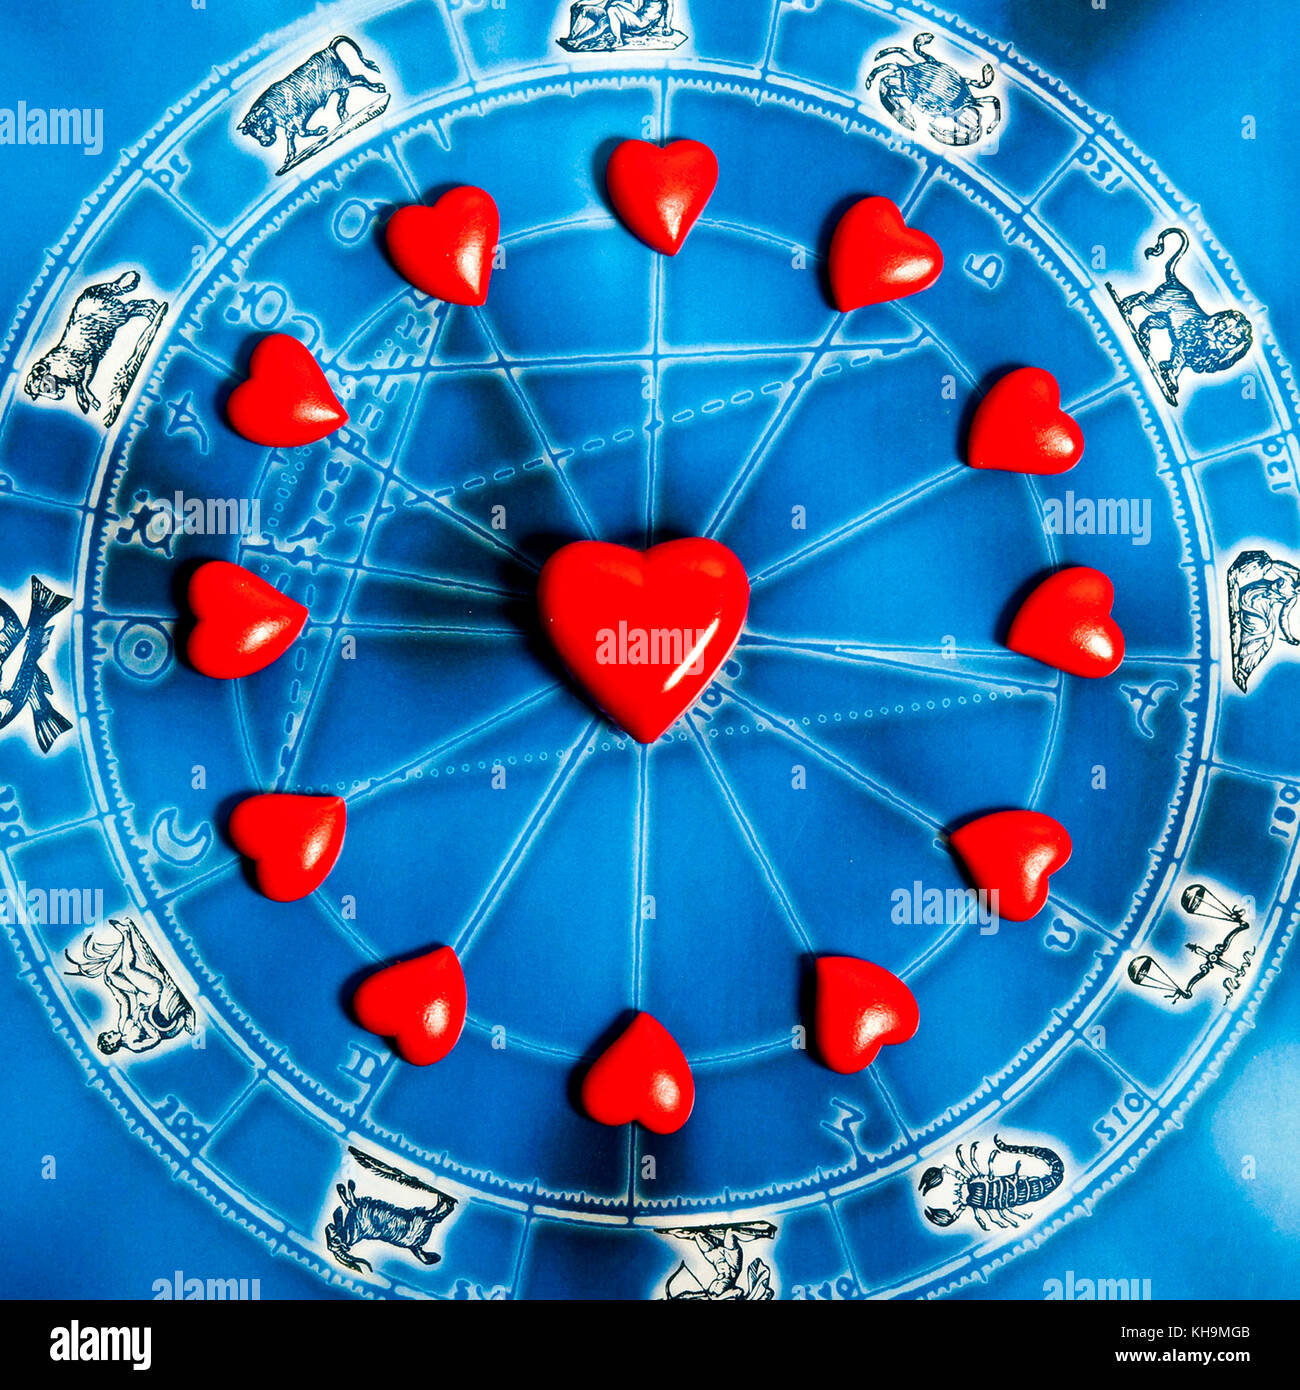 Astrology chart with all zodiac signs and hearts love for astrology chart with all zodiac signs and hearts love for astrology concept nvjuhfo Choice Image